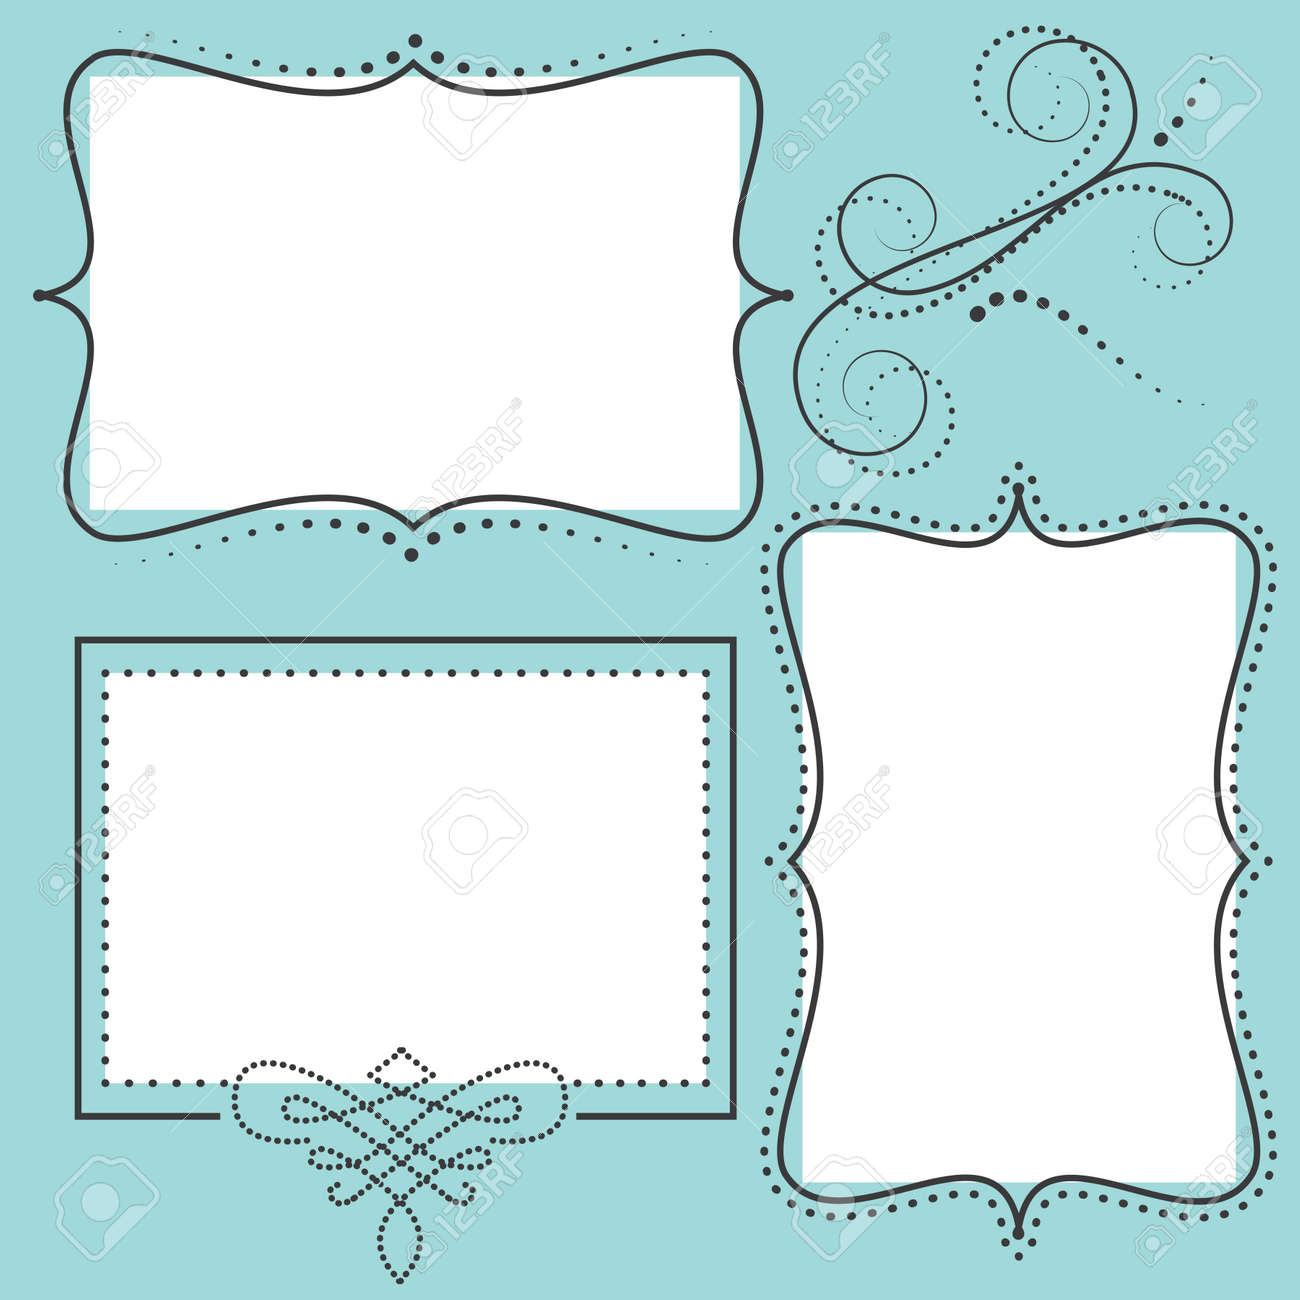 Retro design template with two 4x6 transparent frames for your events, scrapbooking or invitation designs